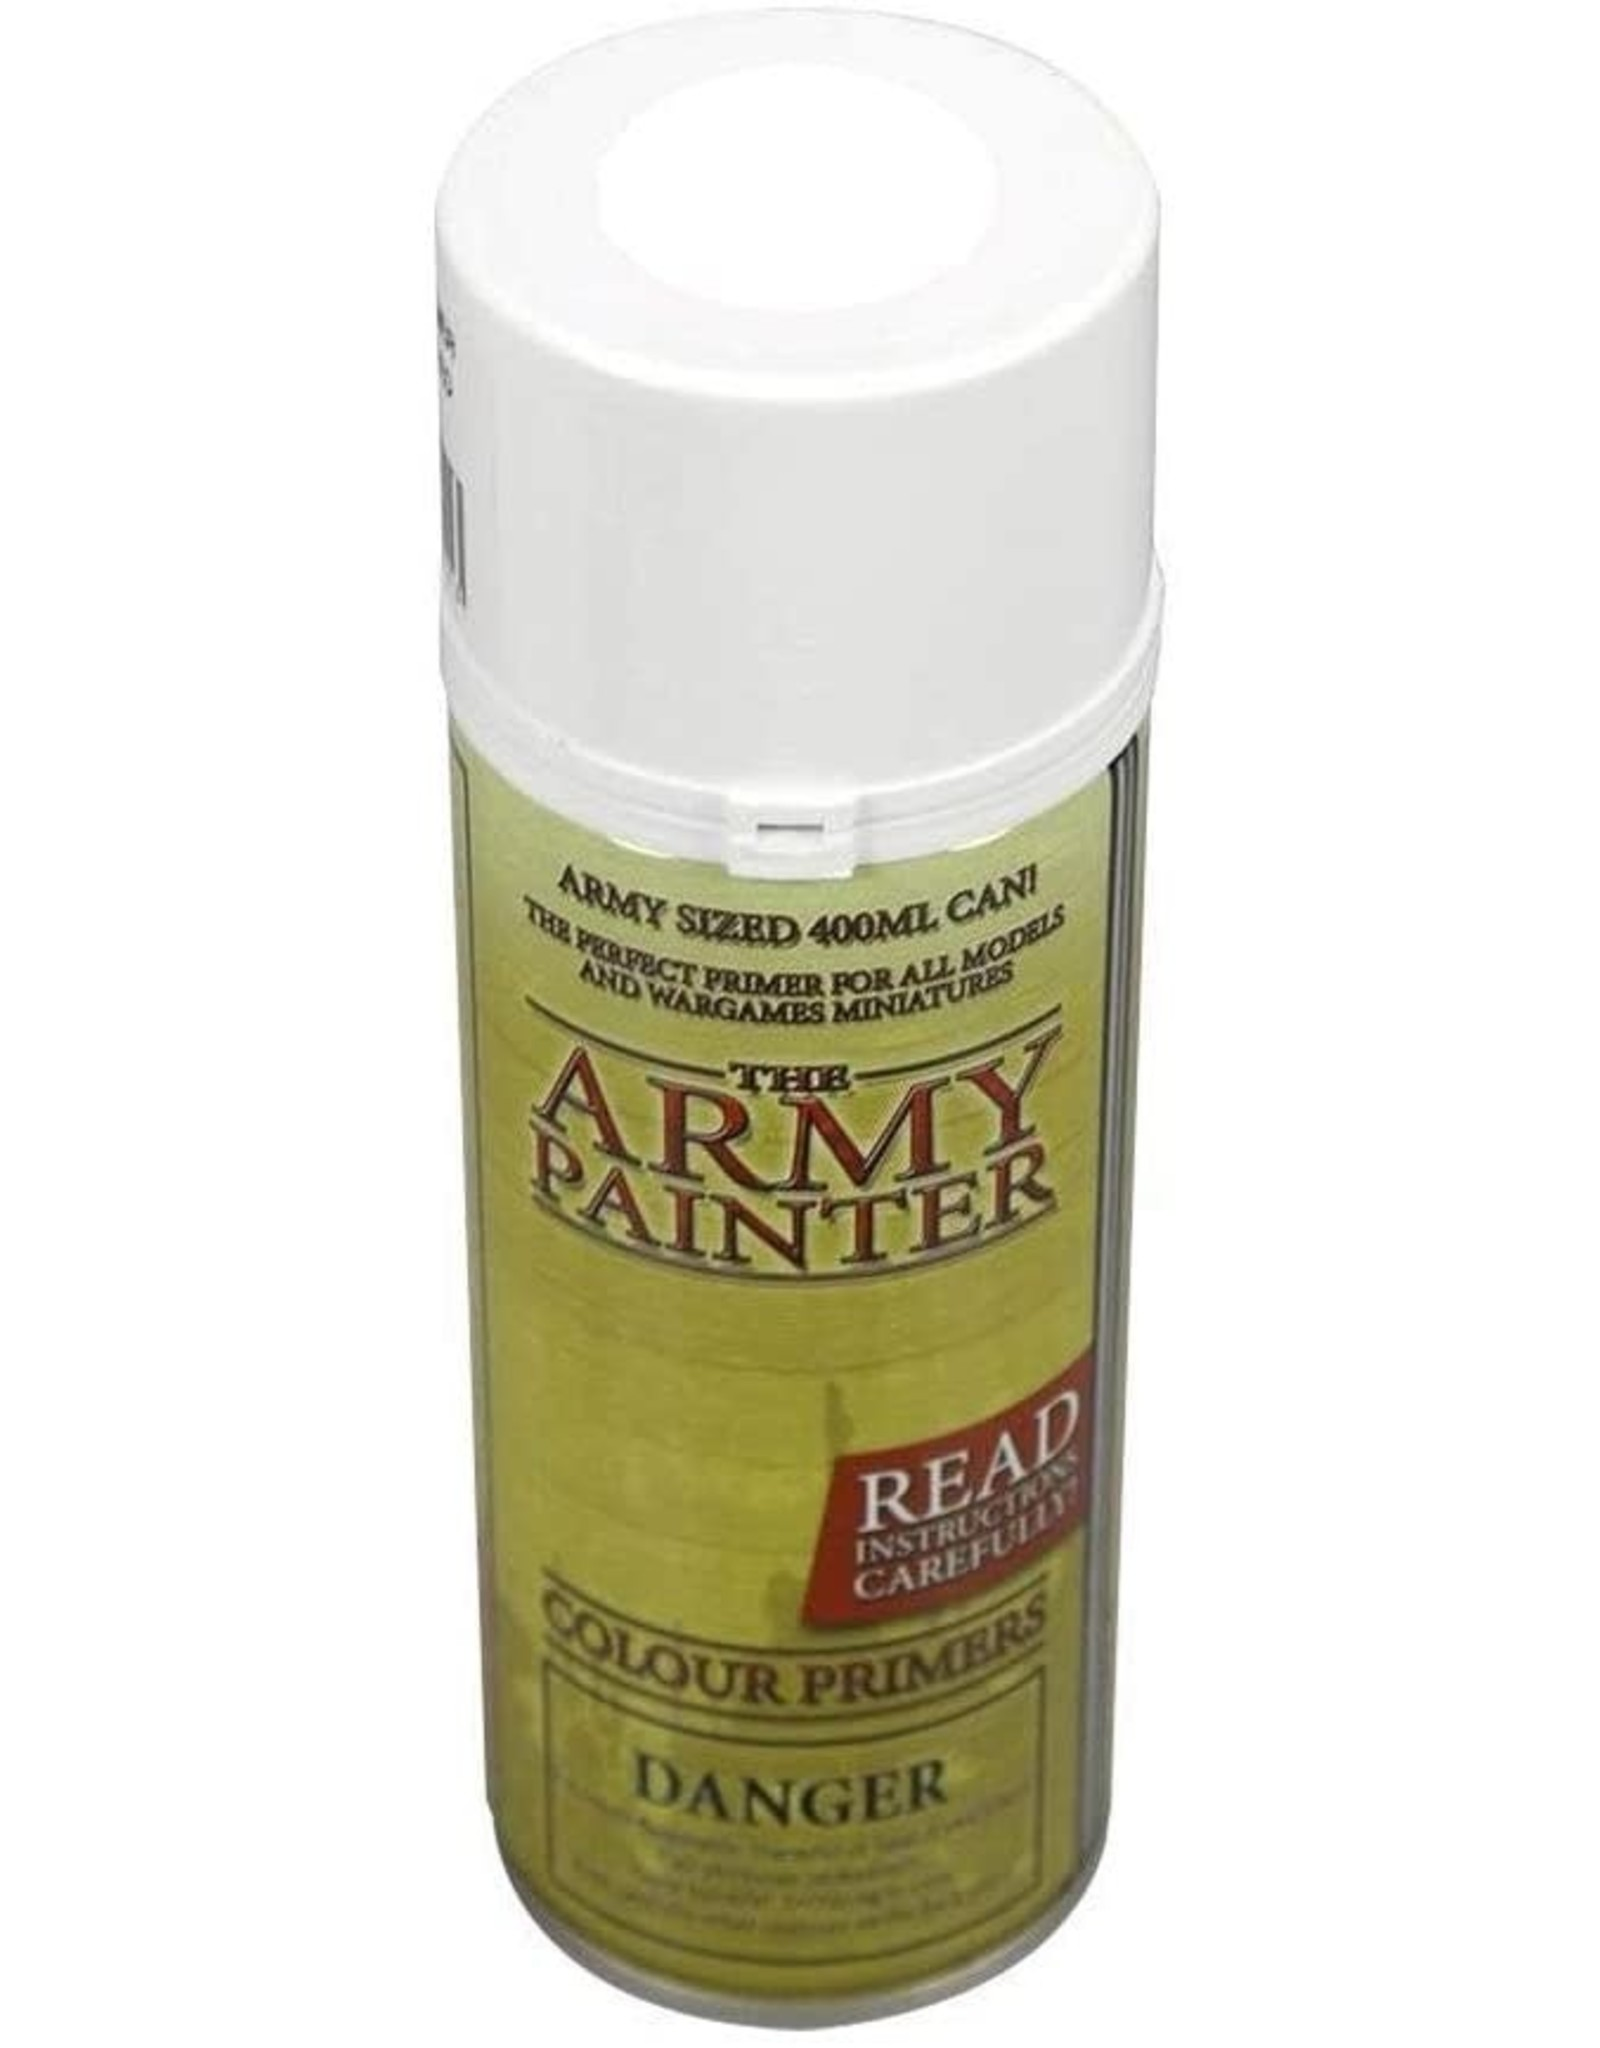 Army Painter Army Painter: Matte White Primer